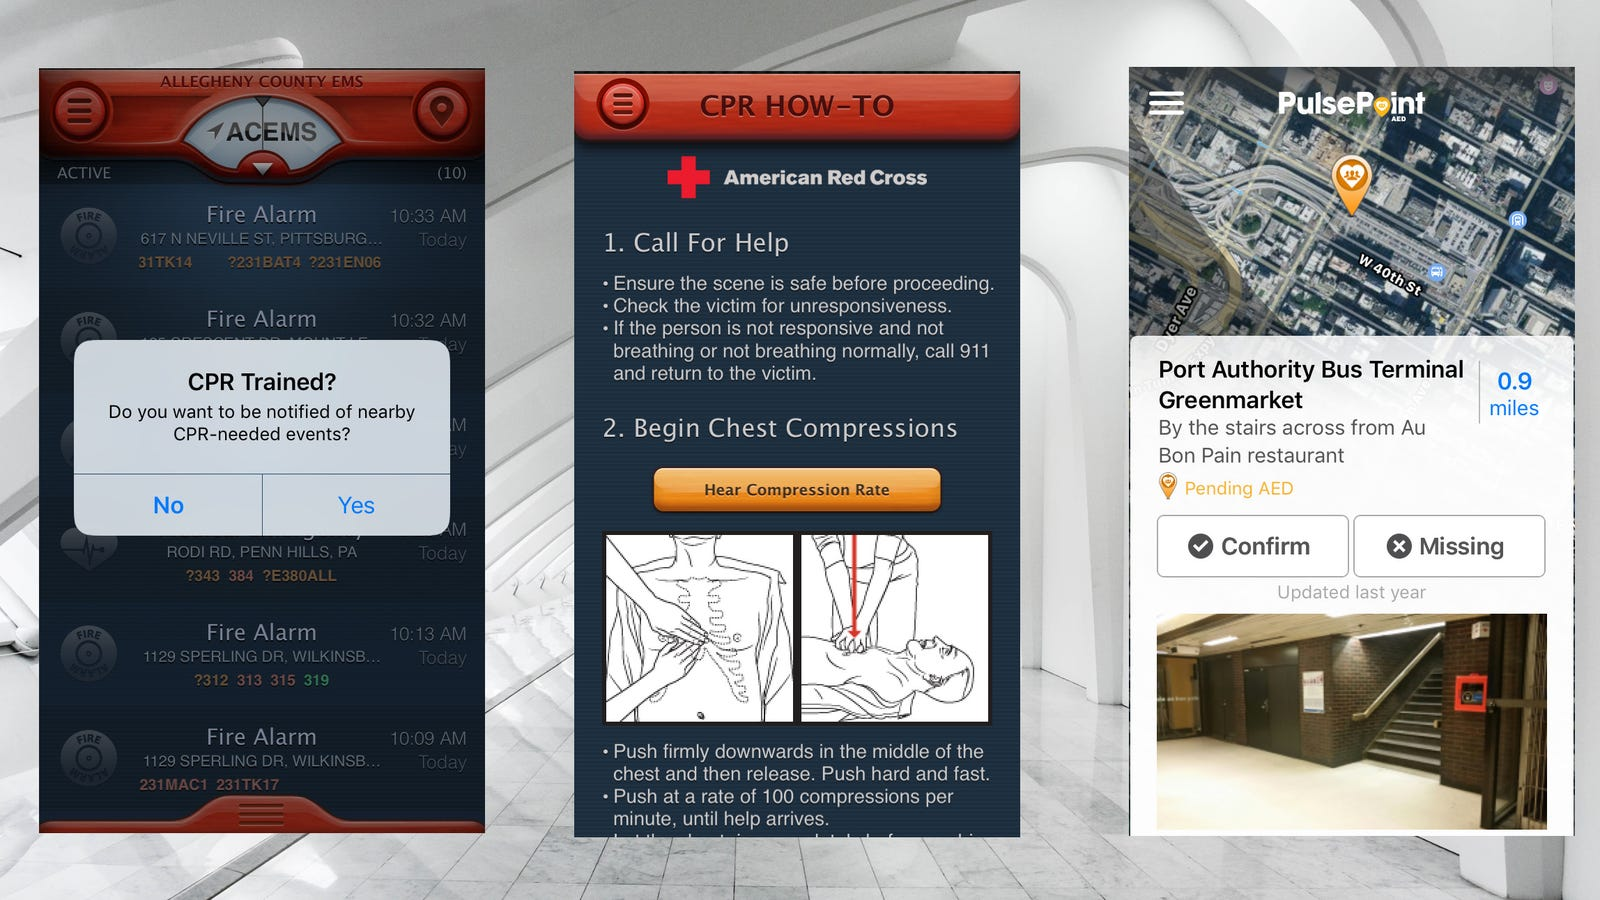 Put Your Cpr Training To Use With This App